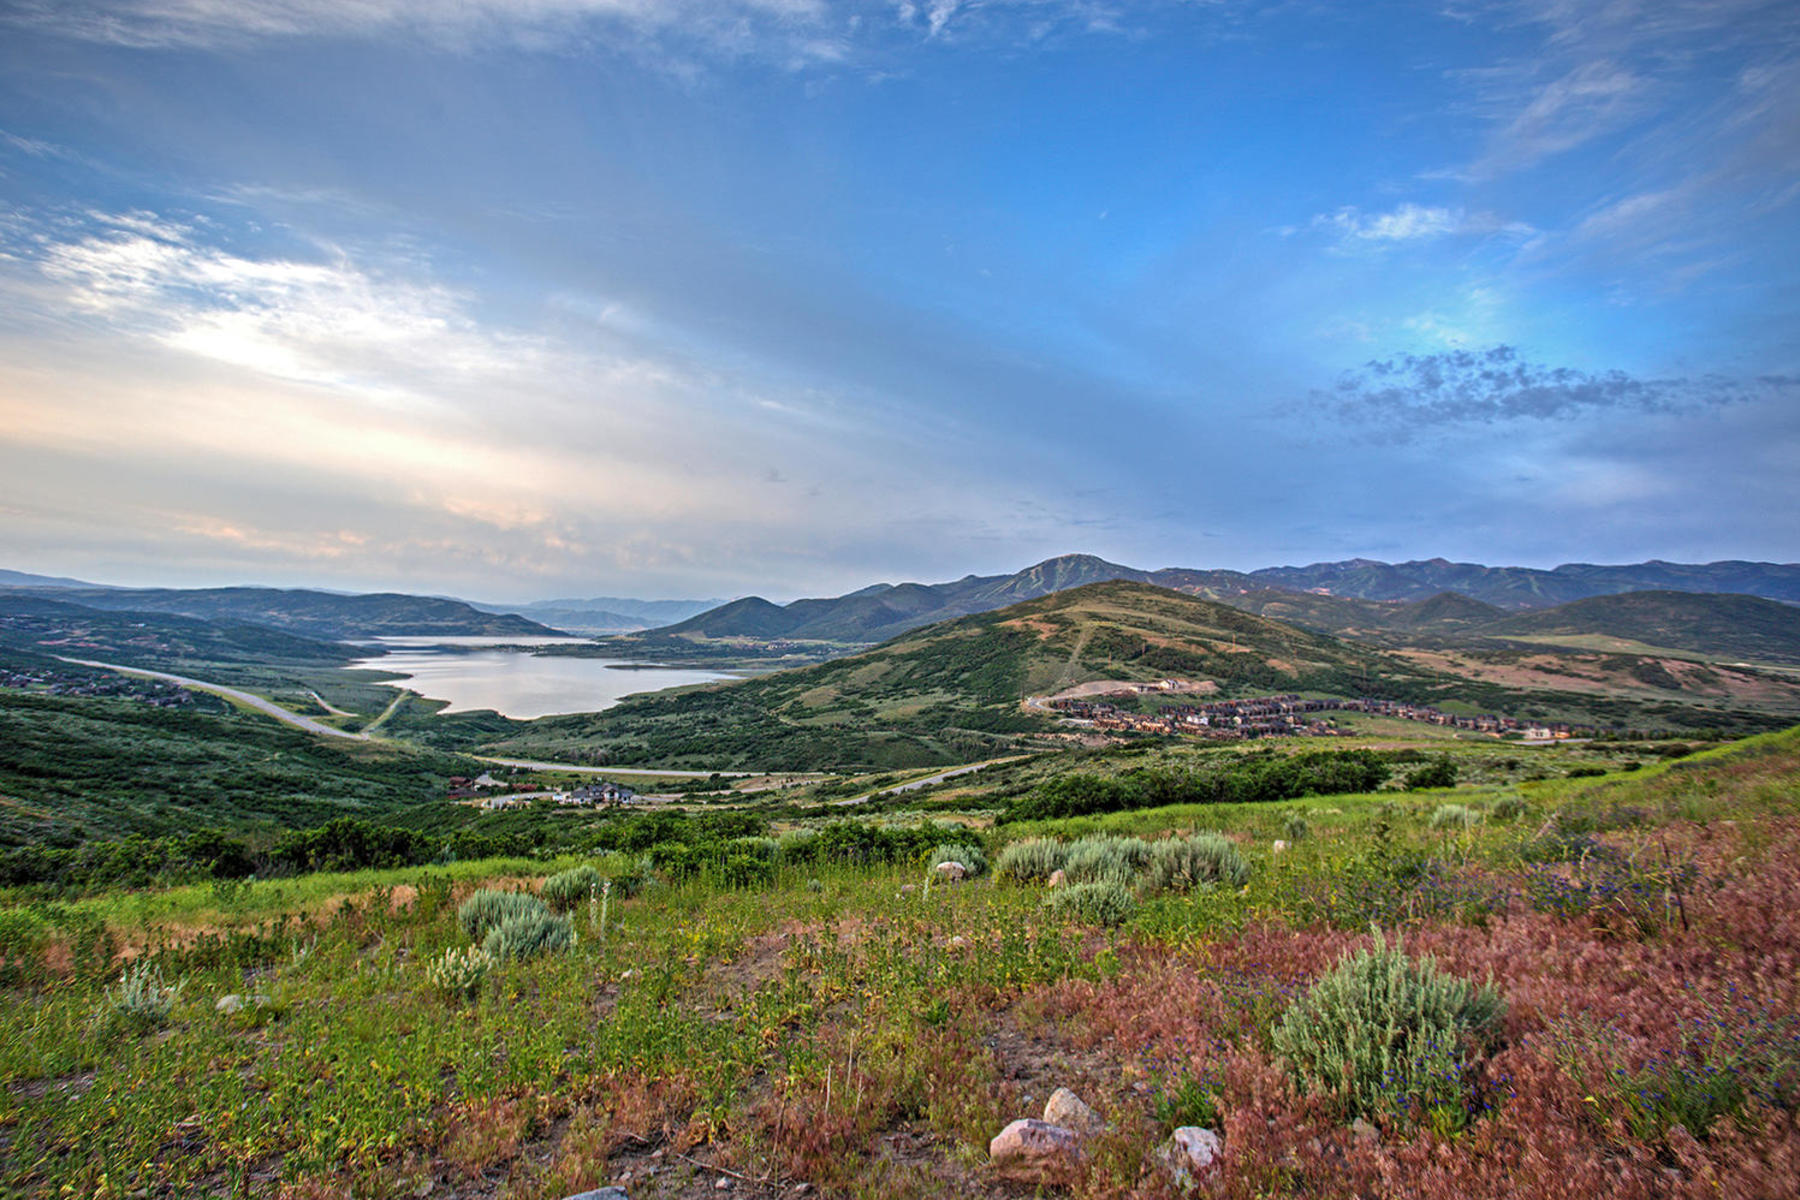 Land for Sale at Come Experience the Gated Community of Deer Vista 202 W Vista Ridge Rd Lot 94 Heber City, Utah, 84032 United States